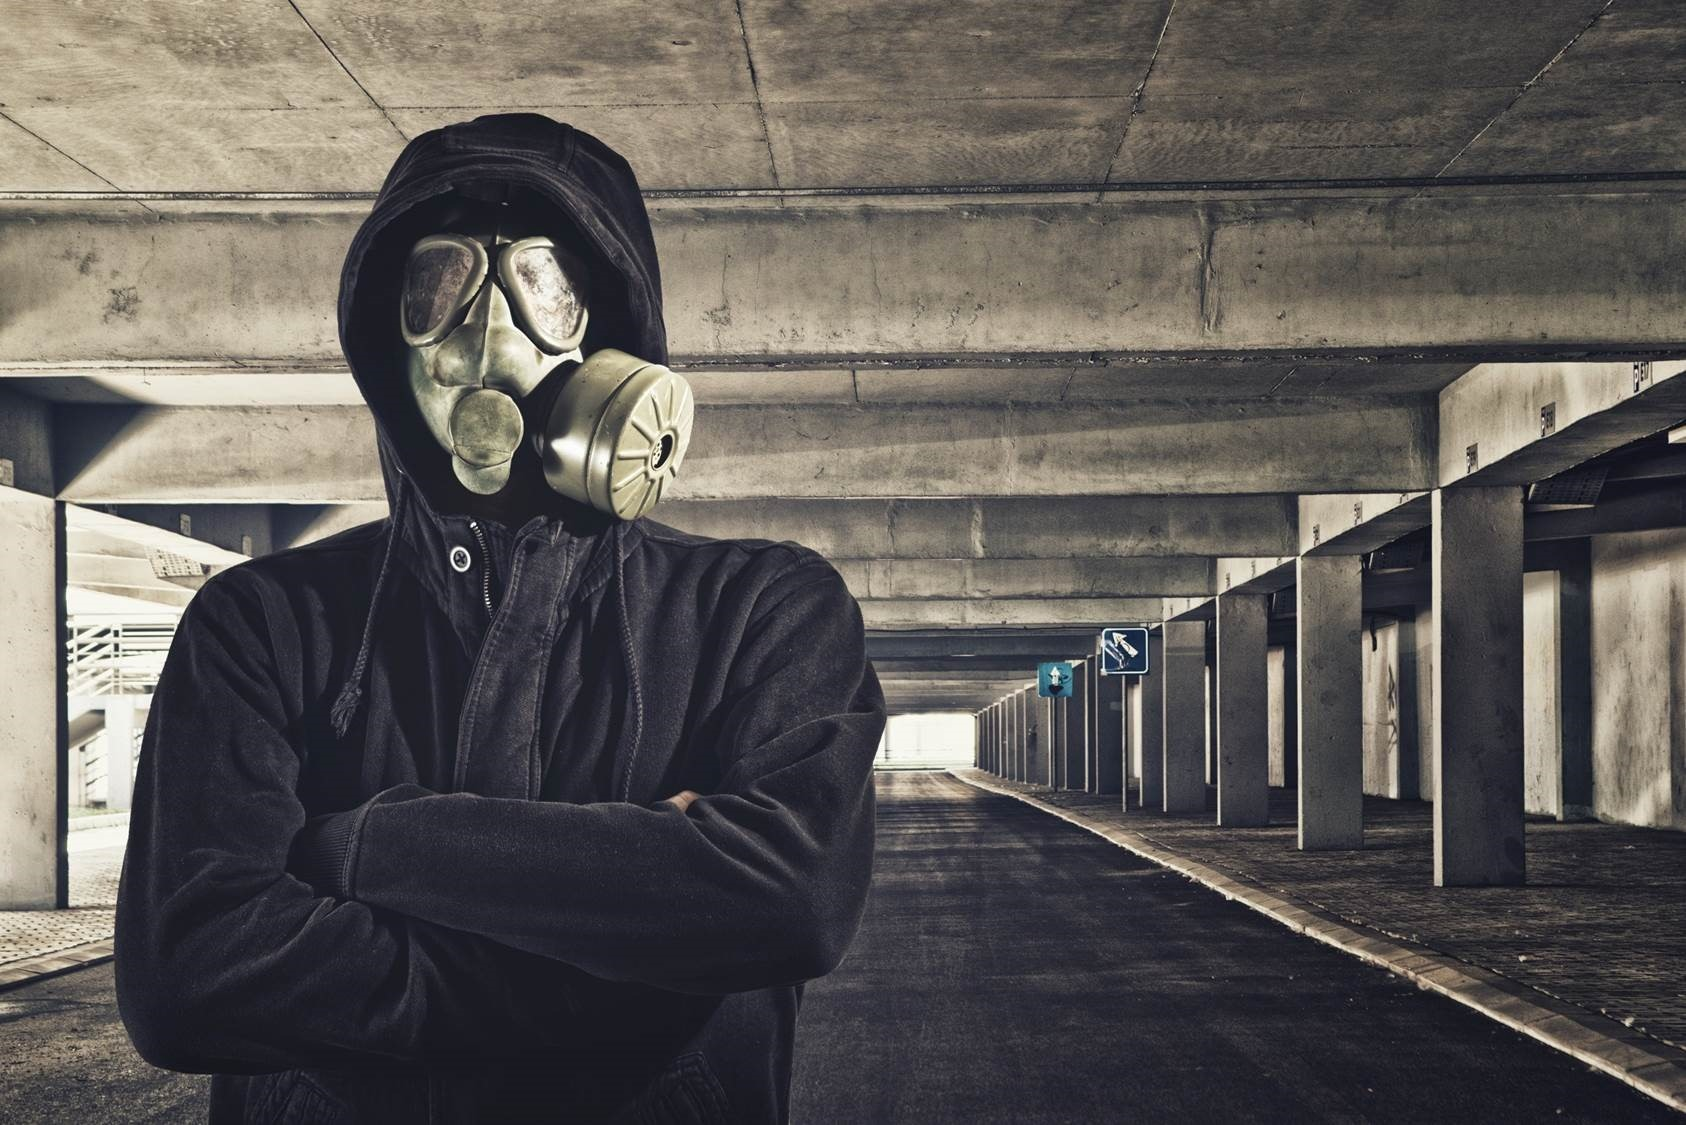 Man With Gas Mask In Public Garage